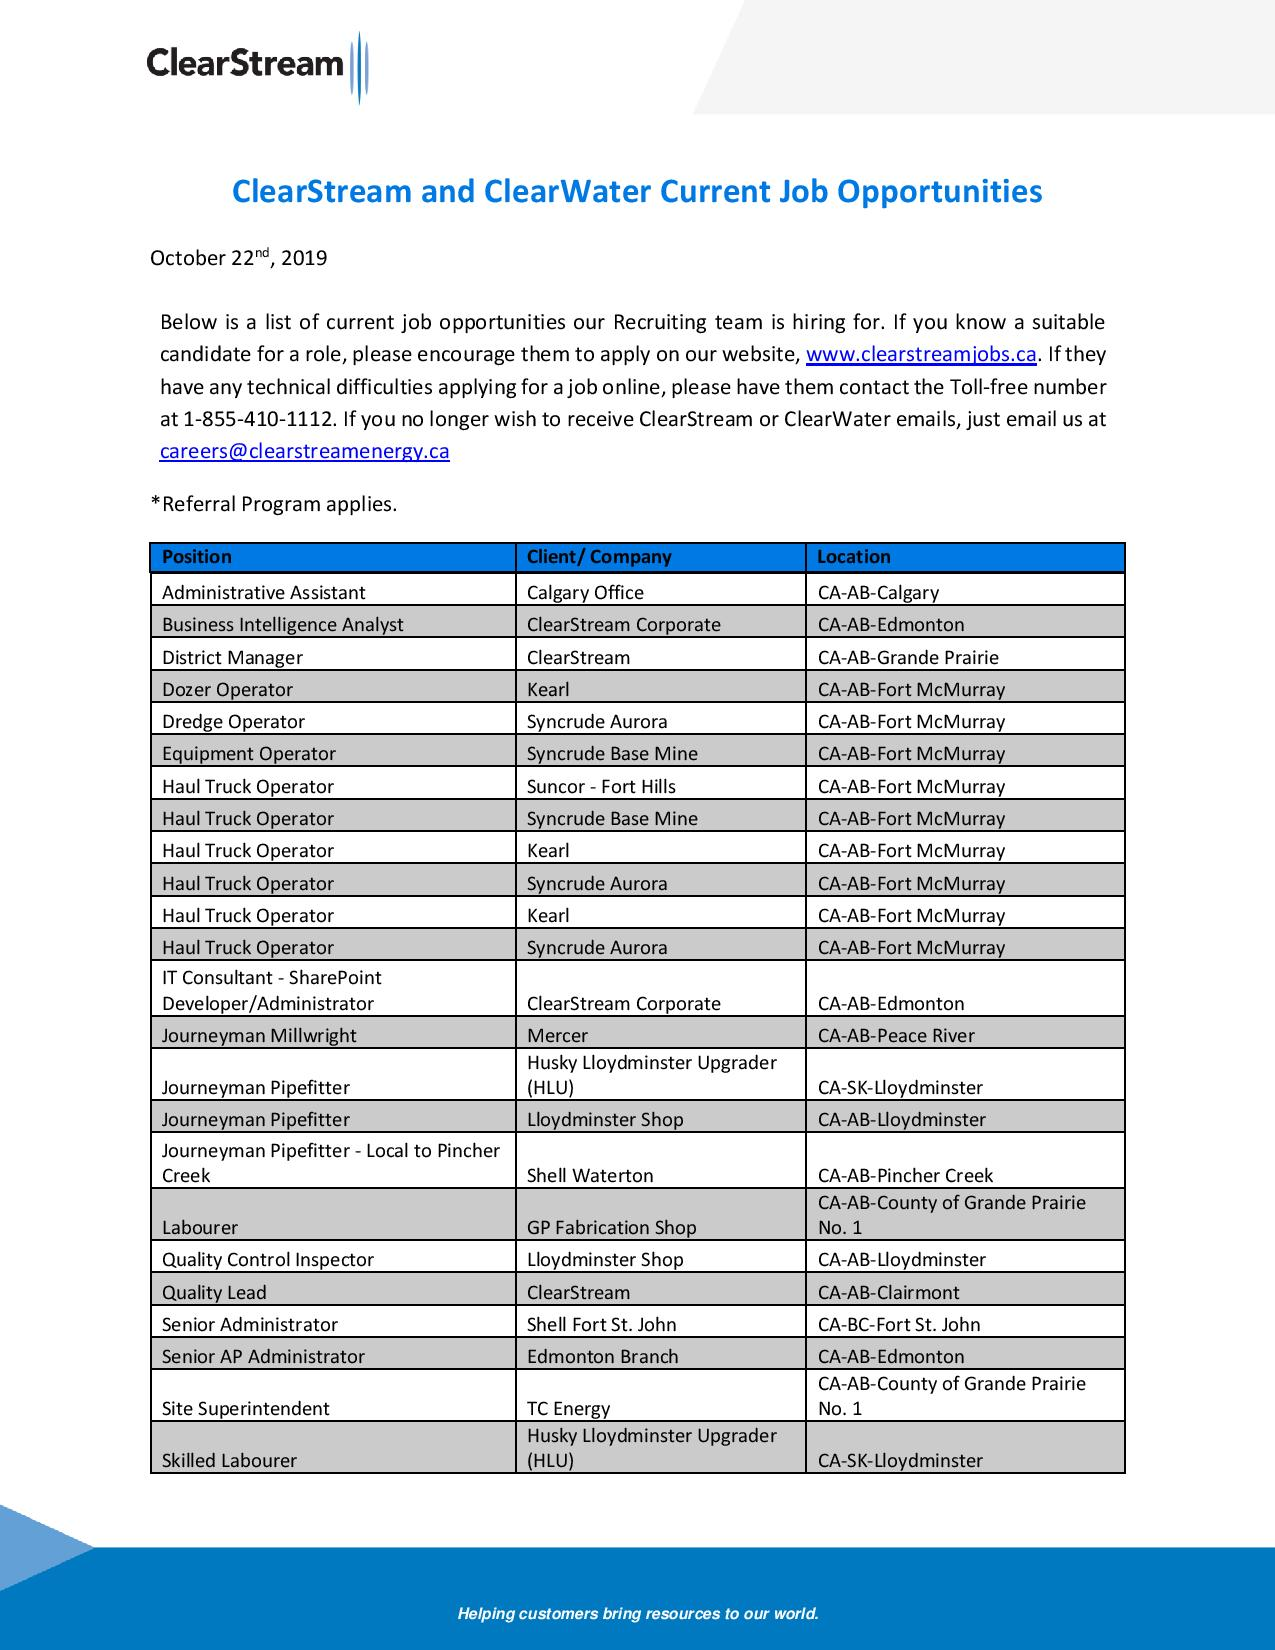 ClearStream and ClearWater Current Job Opportunities October 22nd 2019-page-001